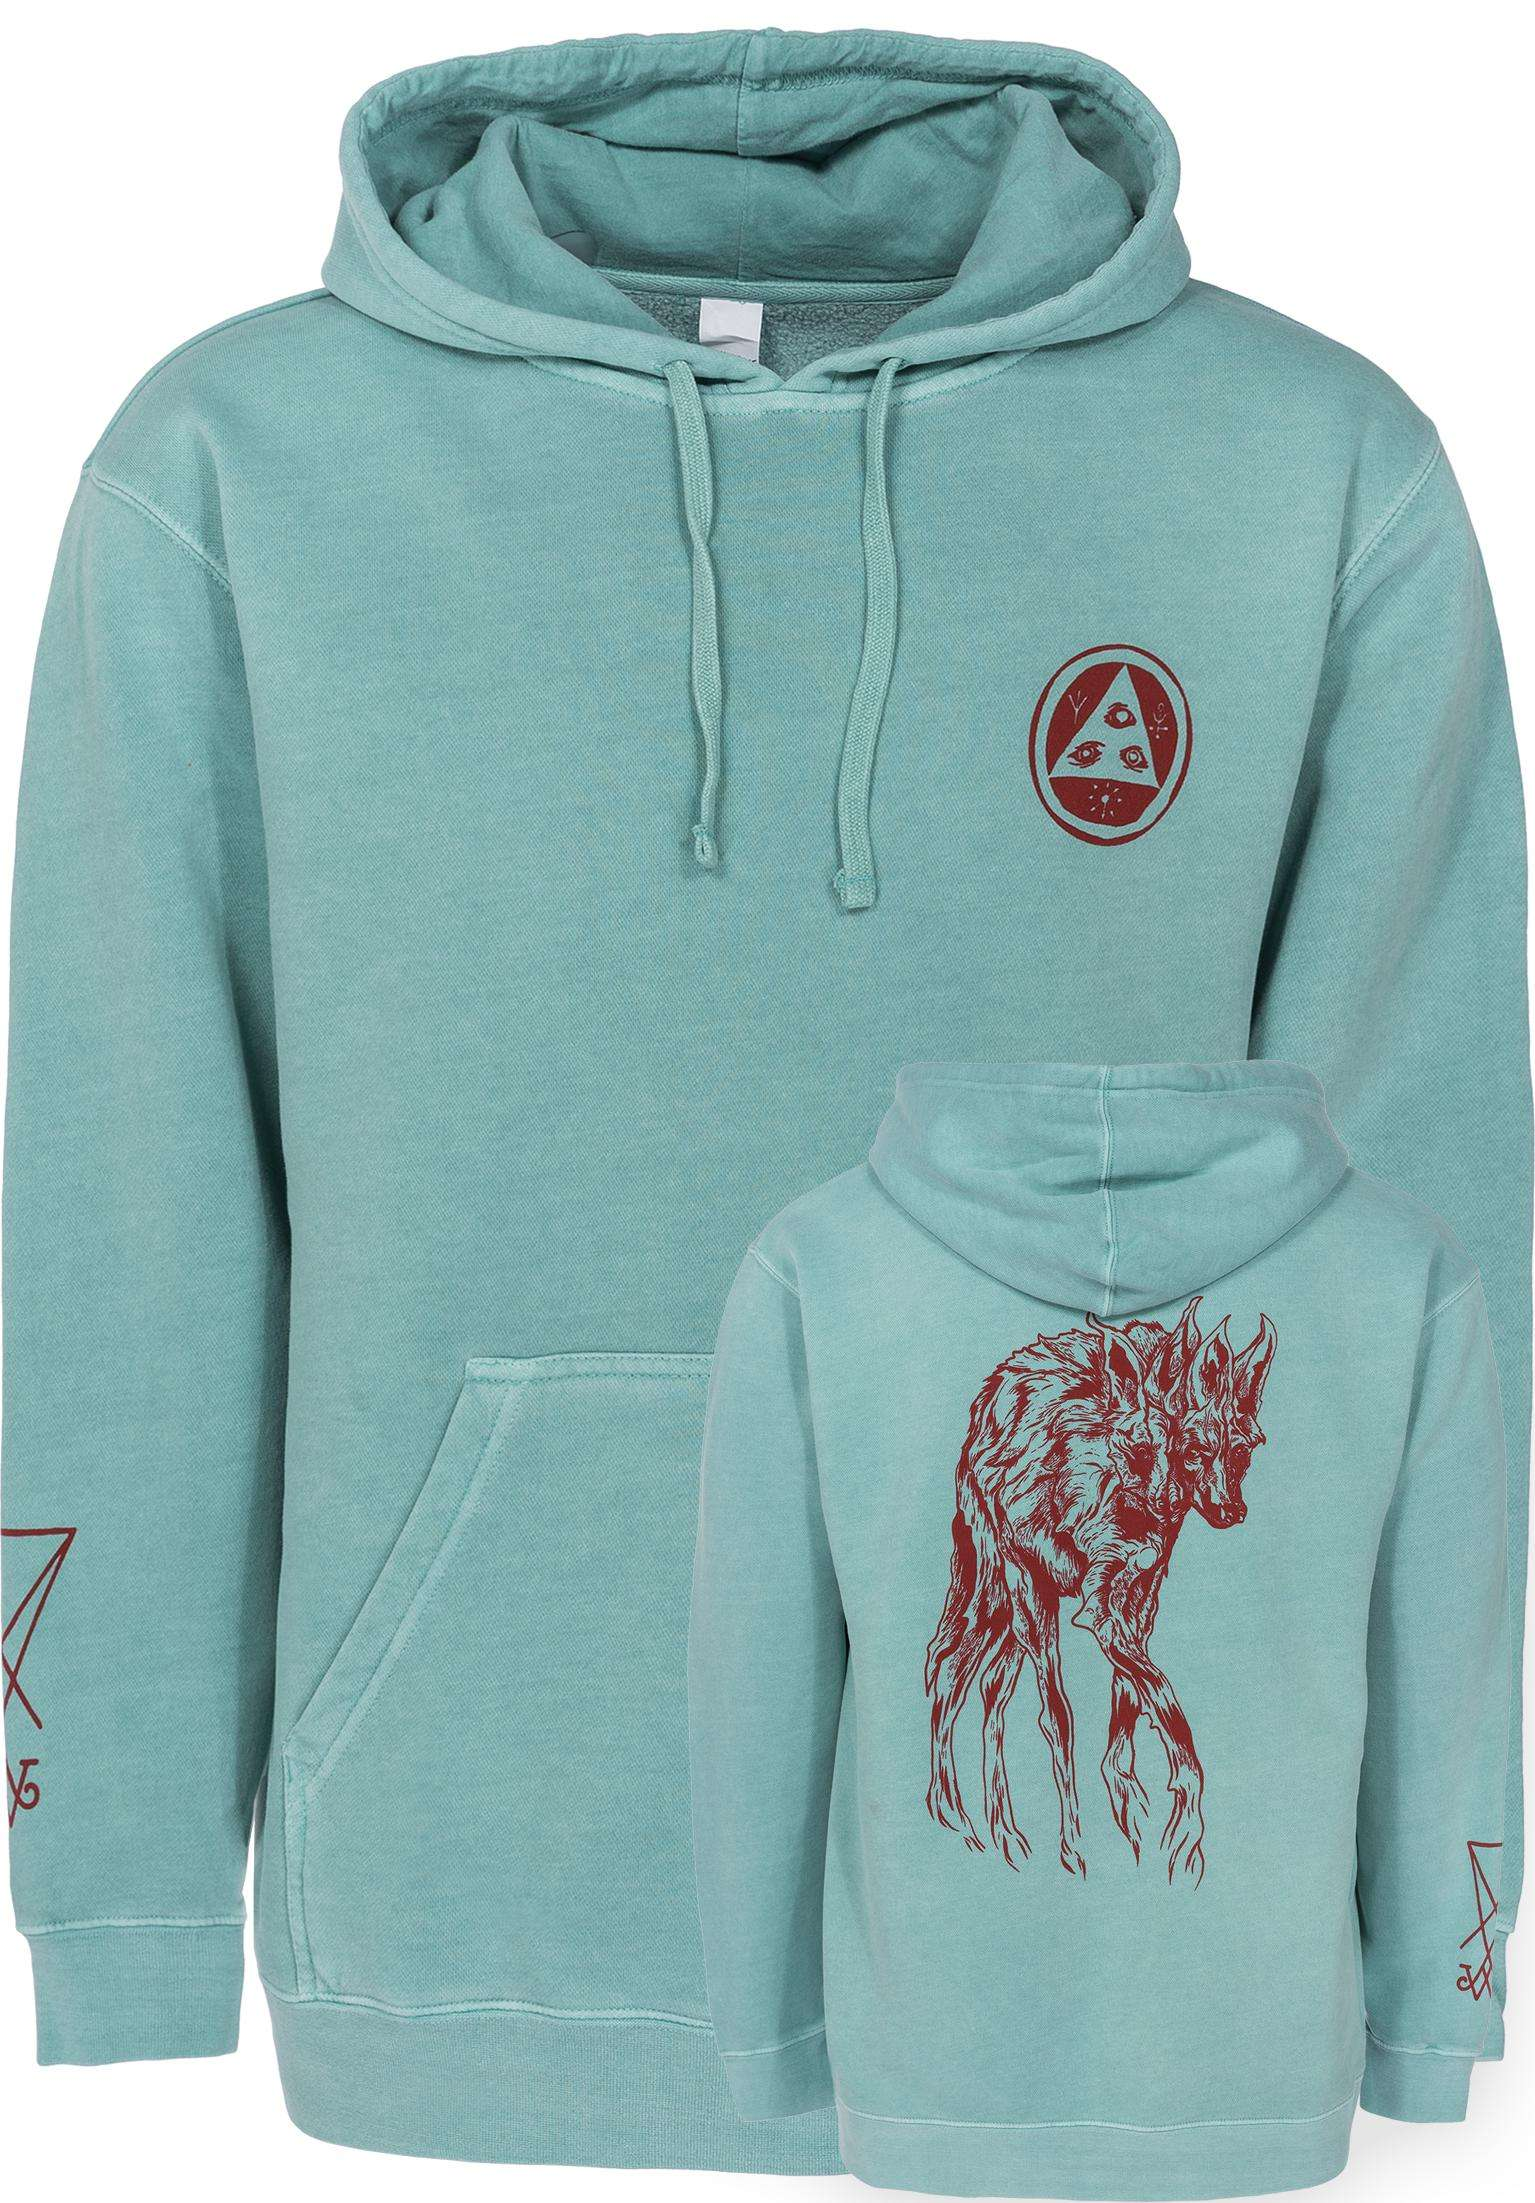 d5b06e904fb8 Maned Woof Pigment-Dyed Welcome Hoodies in mint for Men